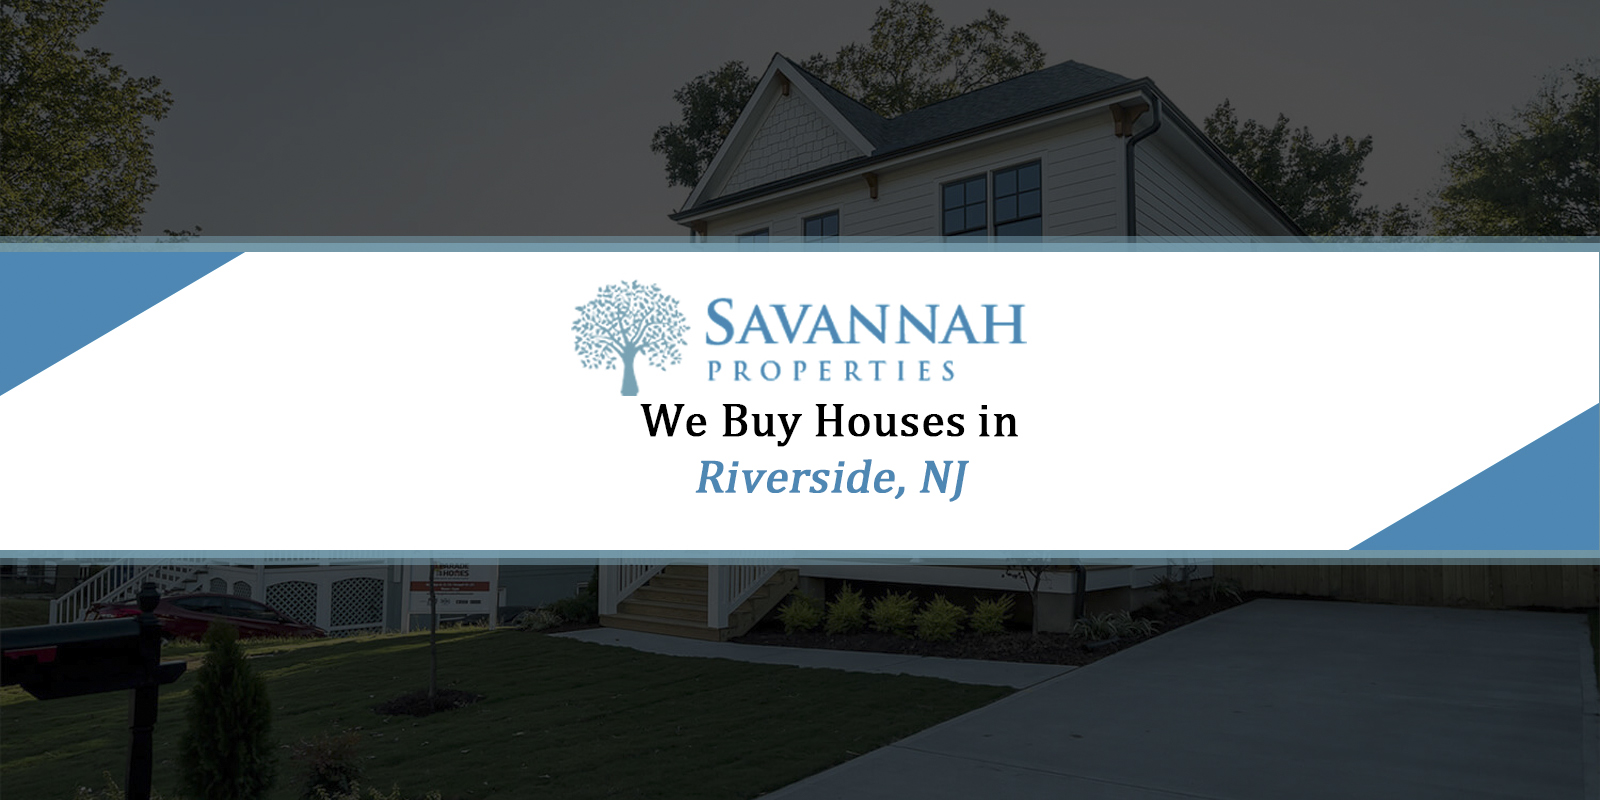 Guide To Selling A House Fast During OR After Divorce In Riverside